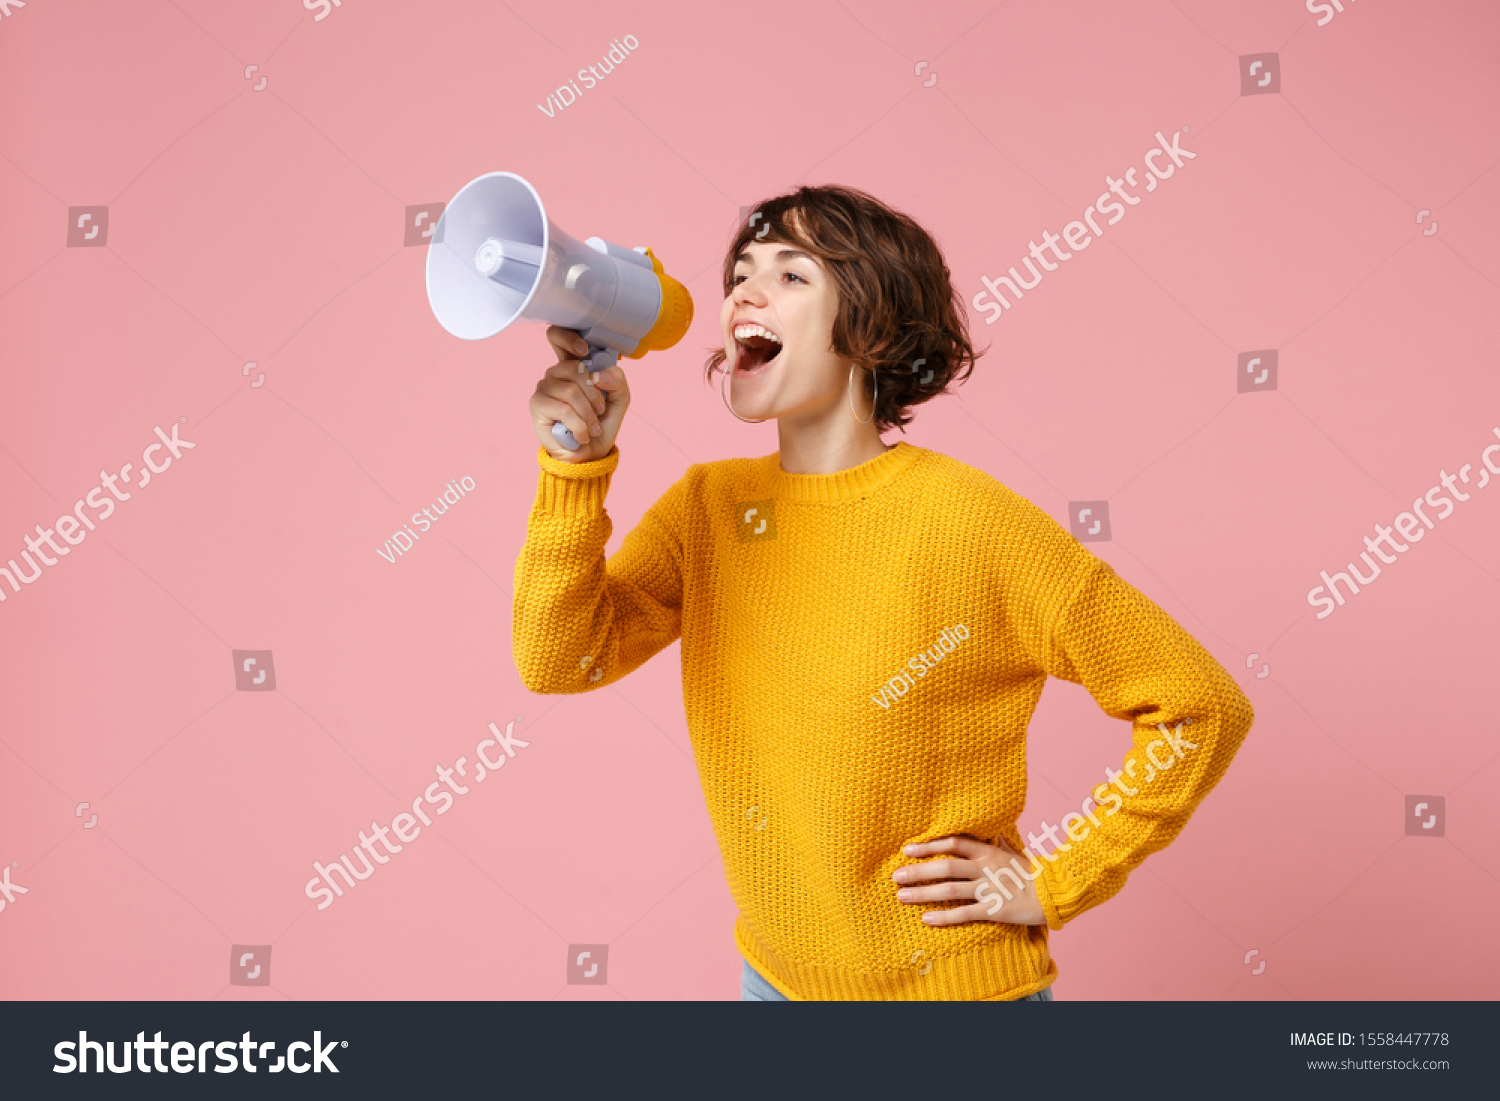 Funny young brunette woman girl in yellow sweater posing isolated on pastel pink wall background studio portrait. People sincere emotions lifestyle concept. Mock up copy space. Screaming in megaphone #1558447778